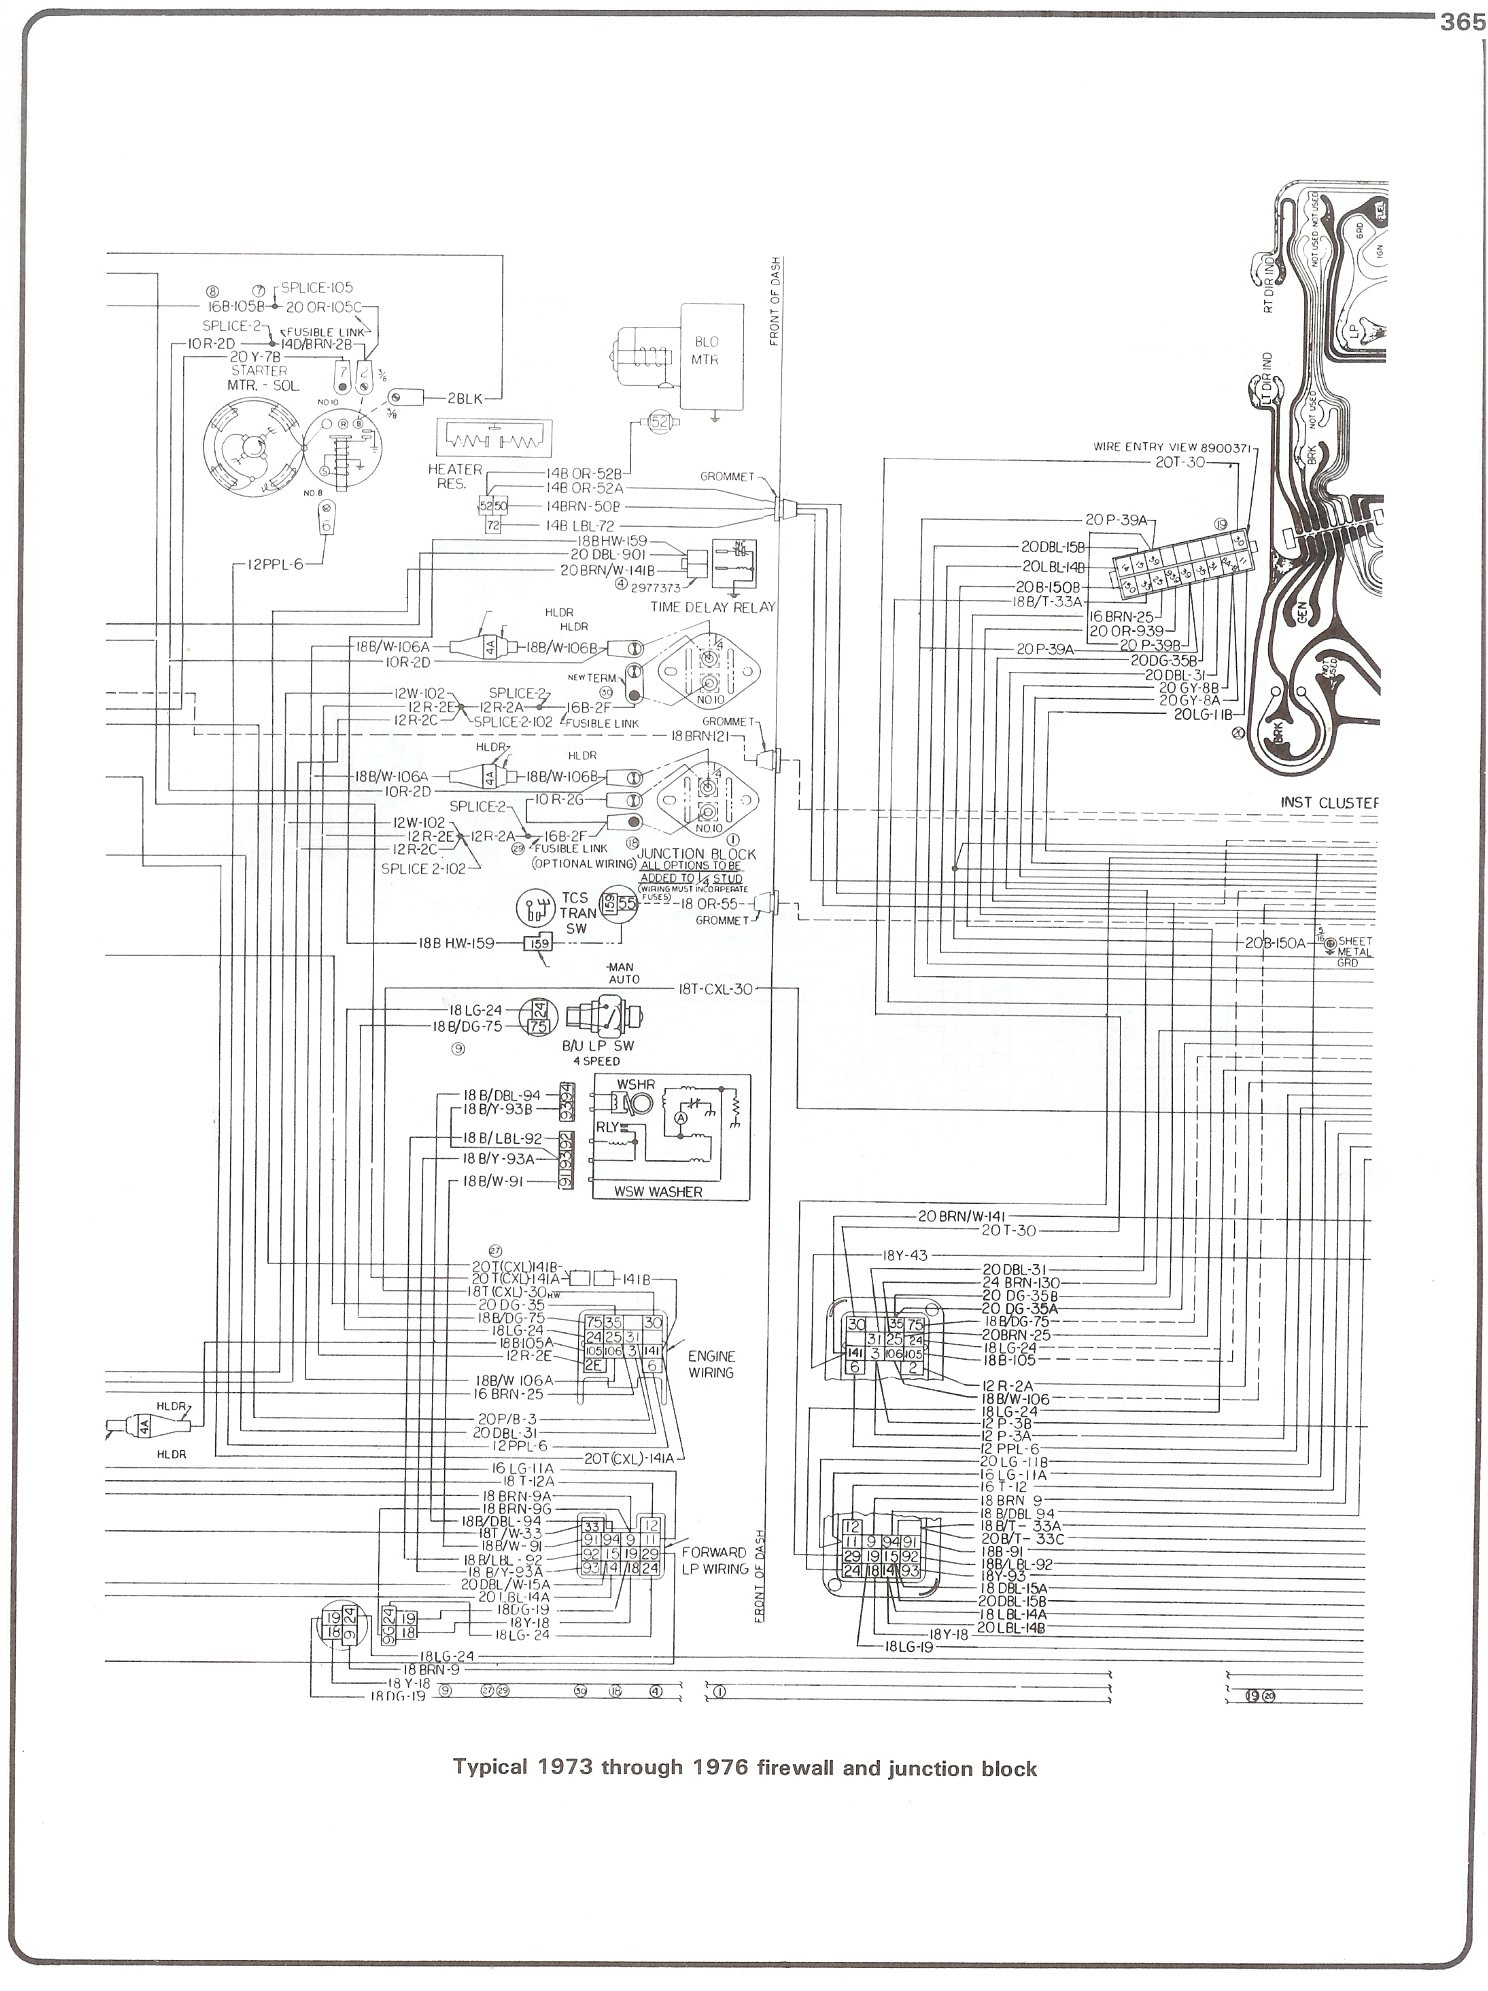 Complete 73 87 Wiring Diagrams 2000 Blazer Engine And 4x4 Transmission Diagram Autos Post 76 Firewall Junction